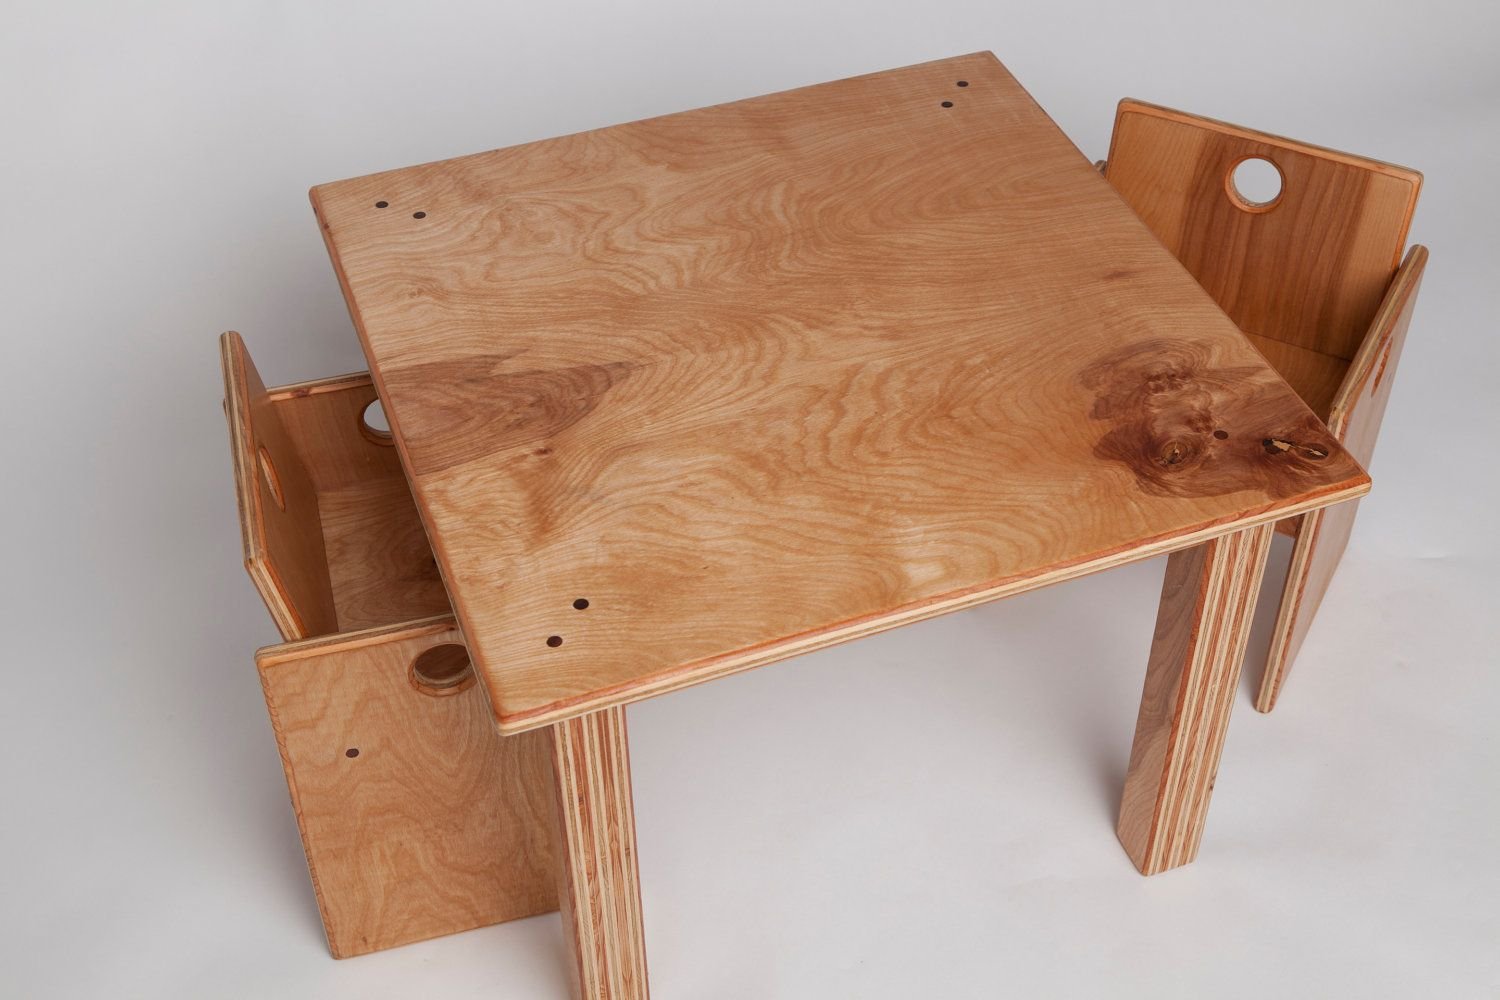 Toddler Size Wooden Table And Chairs Wooden Table And Chairs